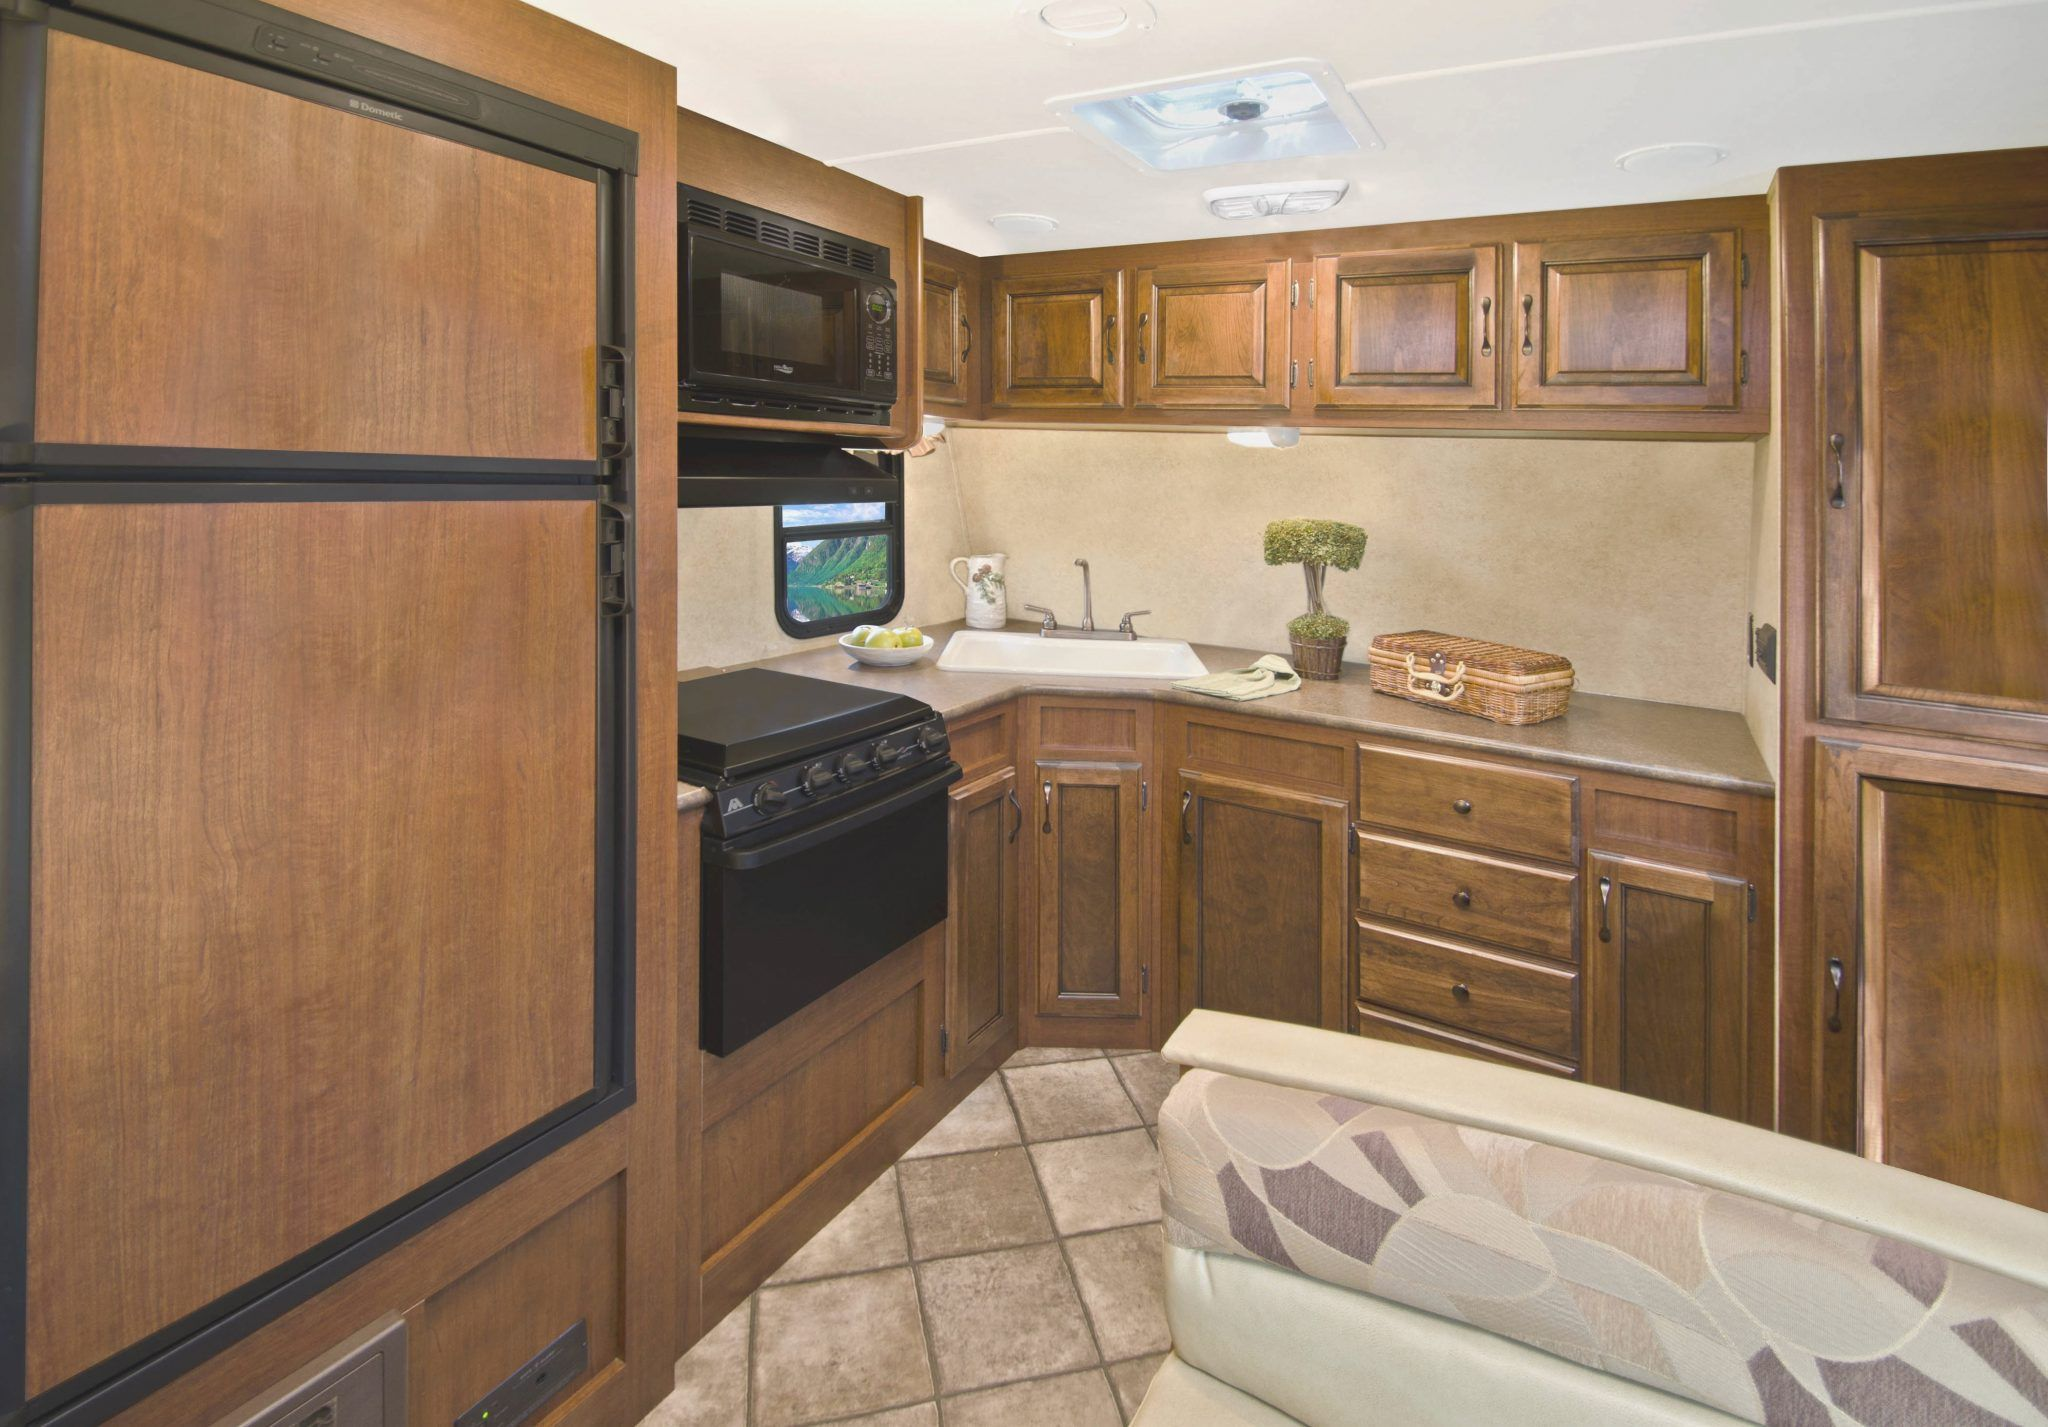 Travel Trailers With Outdoor Kitchens 22 Foot Travel Trailer